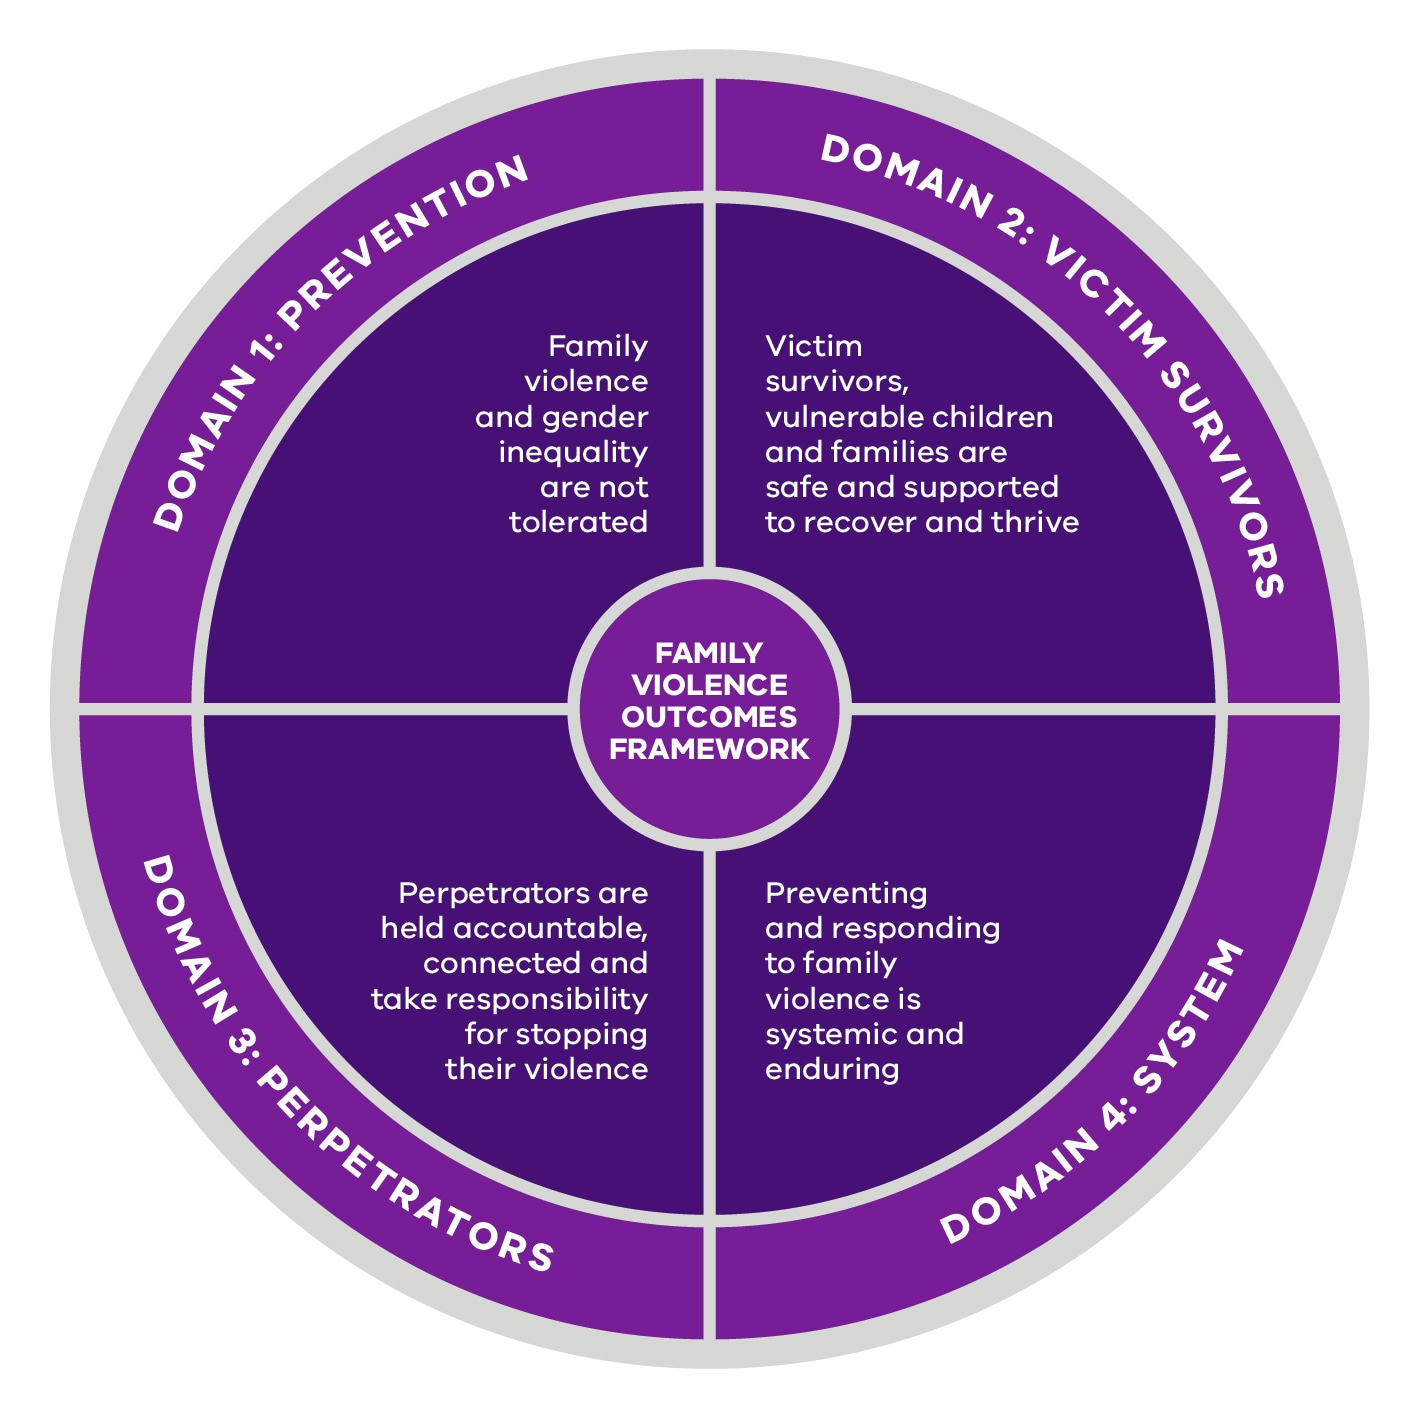 Domain 1, Family violence and gender inequality are not tolerated. Domain 2, Victim survivors, vulnerable children and families are safe and supported to recover and thrive. Domain 3, Perpetrators are held accountable, connected and take responsibility for stopping their violence. Domain 4, Preventing and responding to family violence is systemic and enduring.